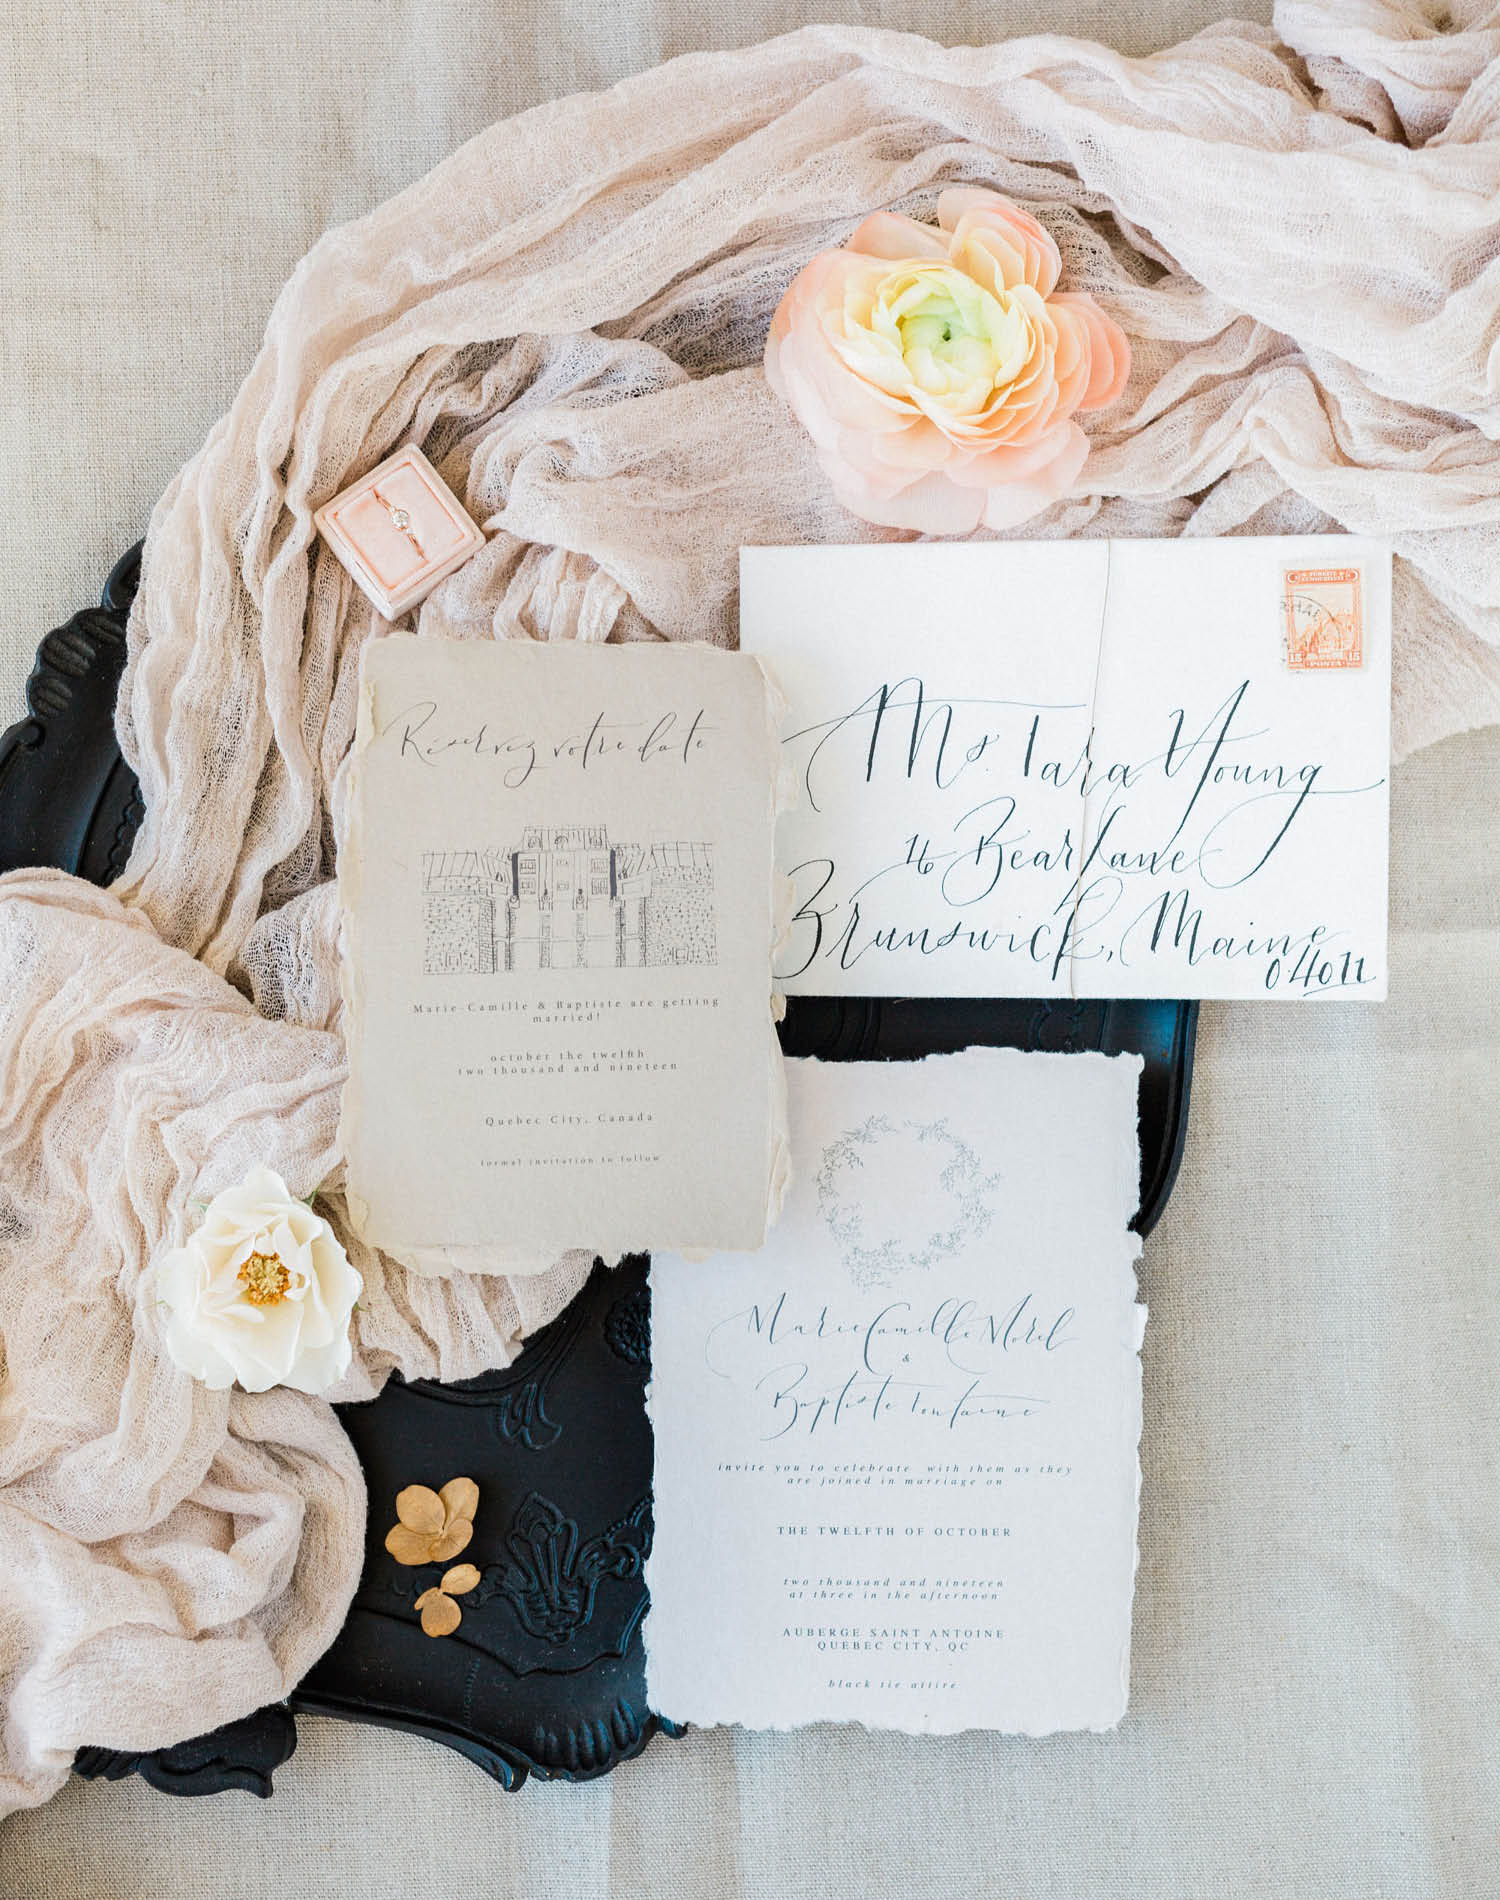 French Farm House Inspired Wedding in Quebec Auberge Saint-Antoine - Wedding Invitation Suite by Oh Joy Calligraphy